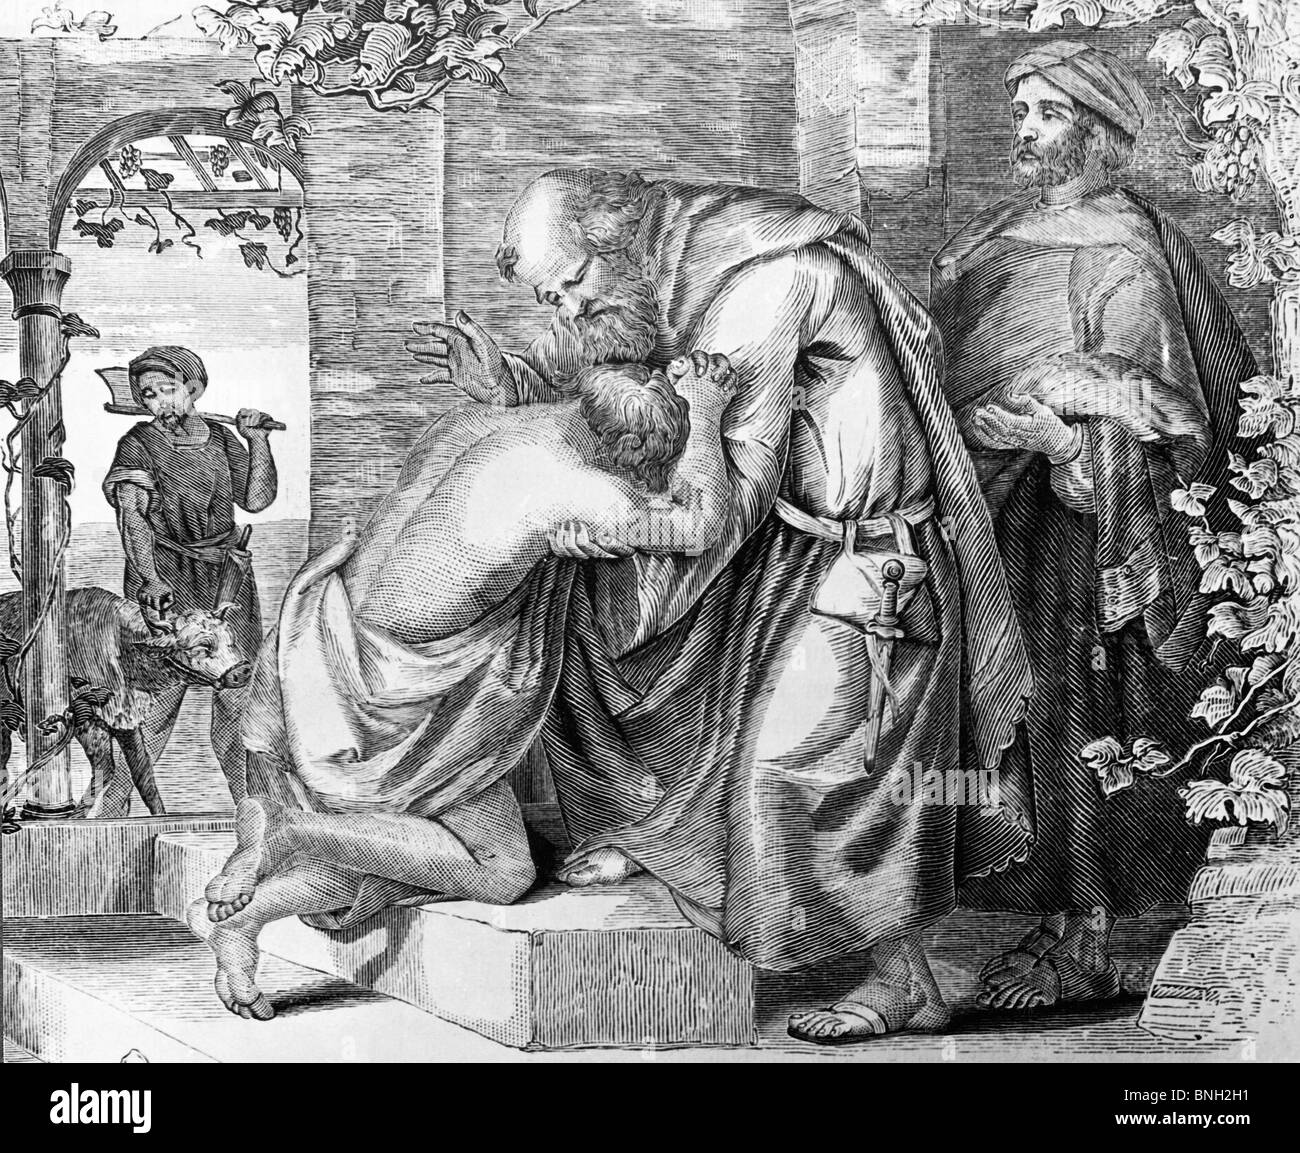 Parable of the Return of the Prodigal Son by Artist Unknown - Stock Image